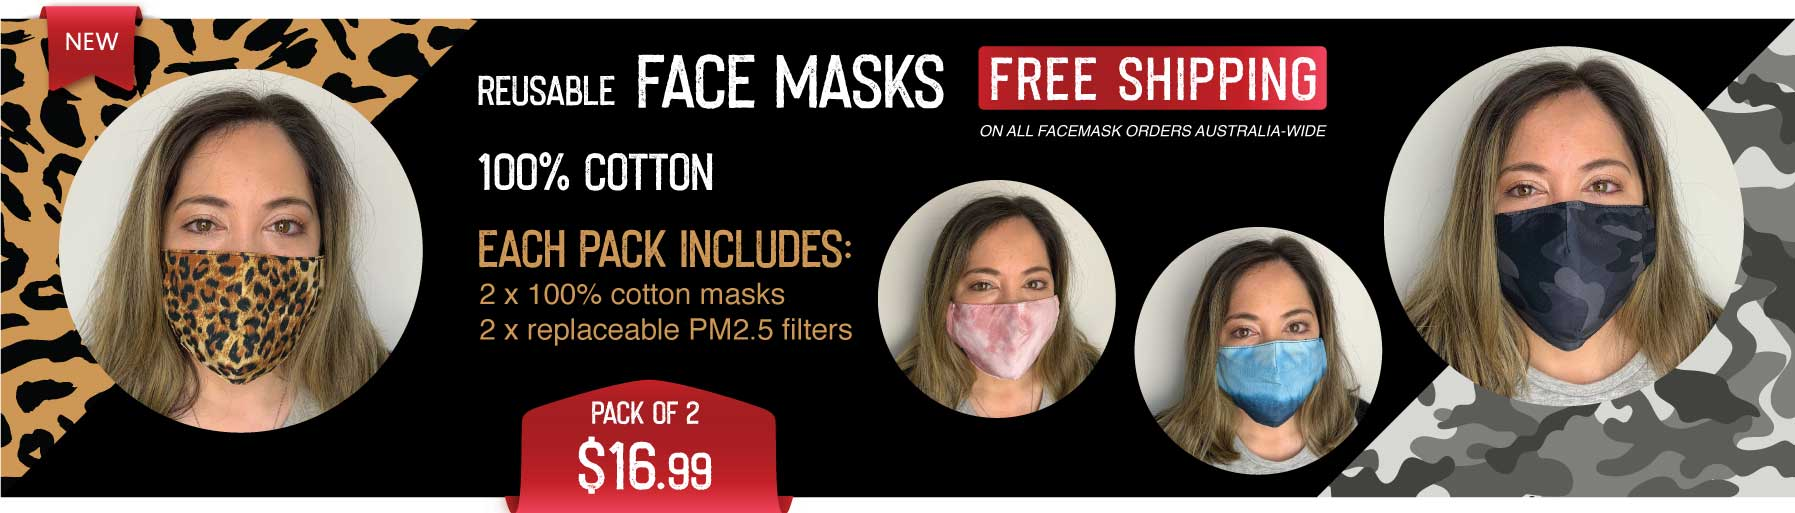 face-masks-permanent-banner.jpg